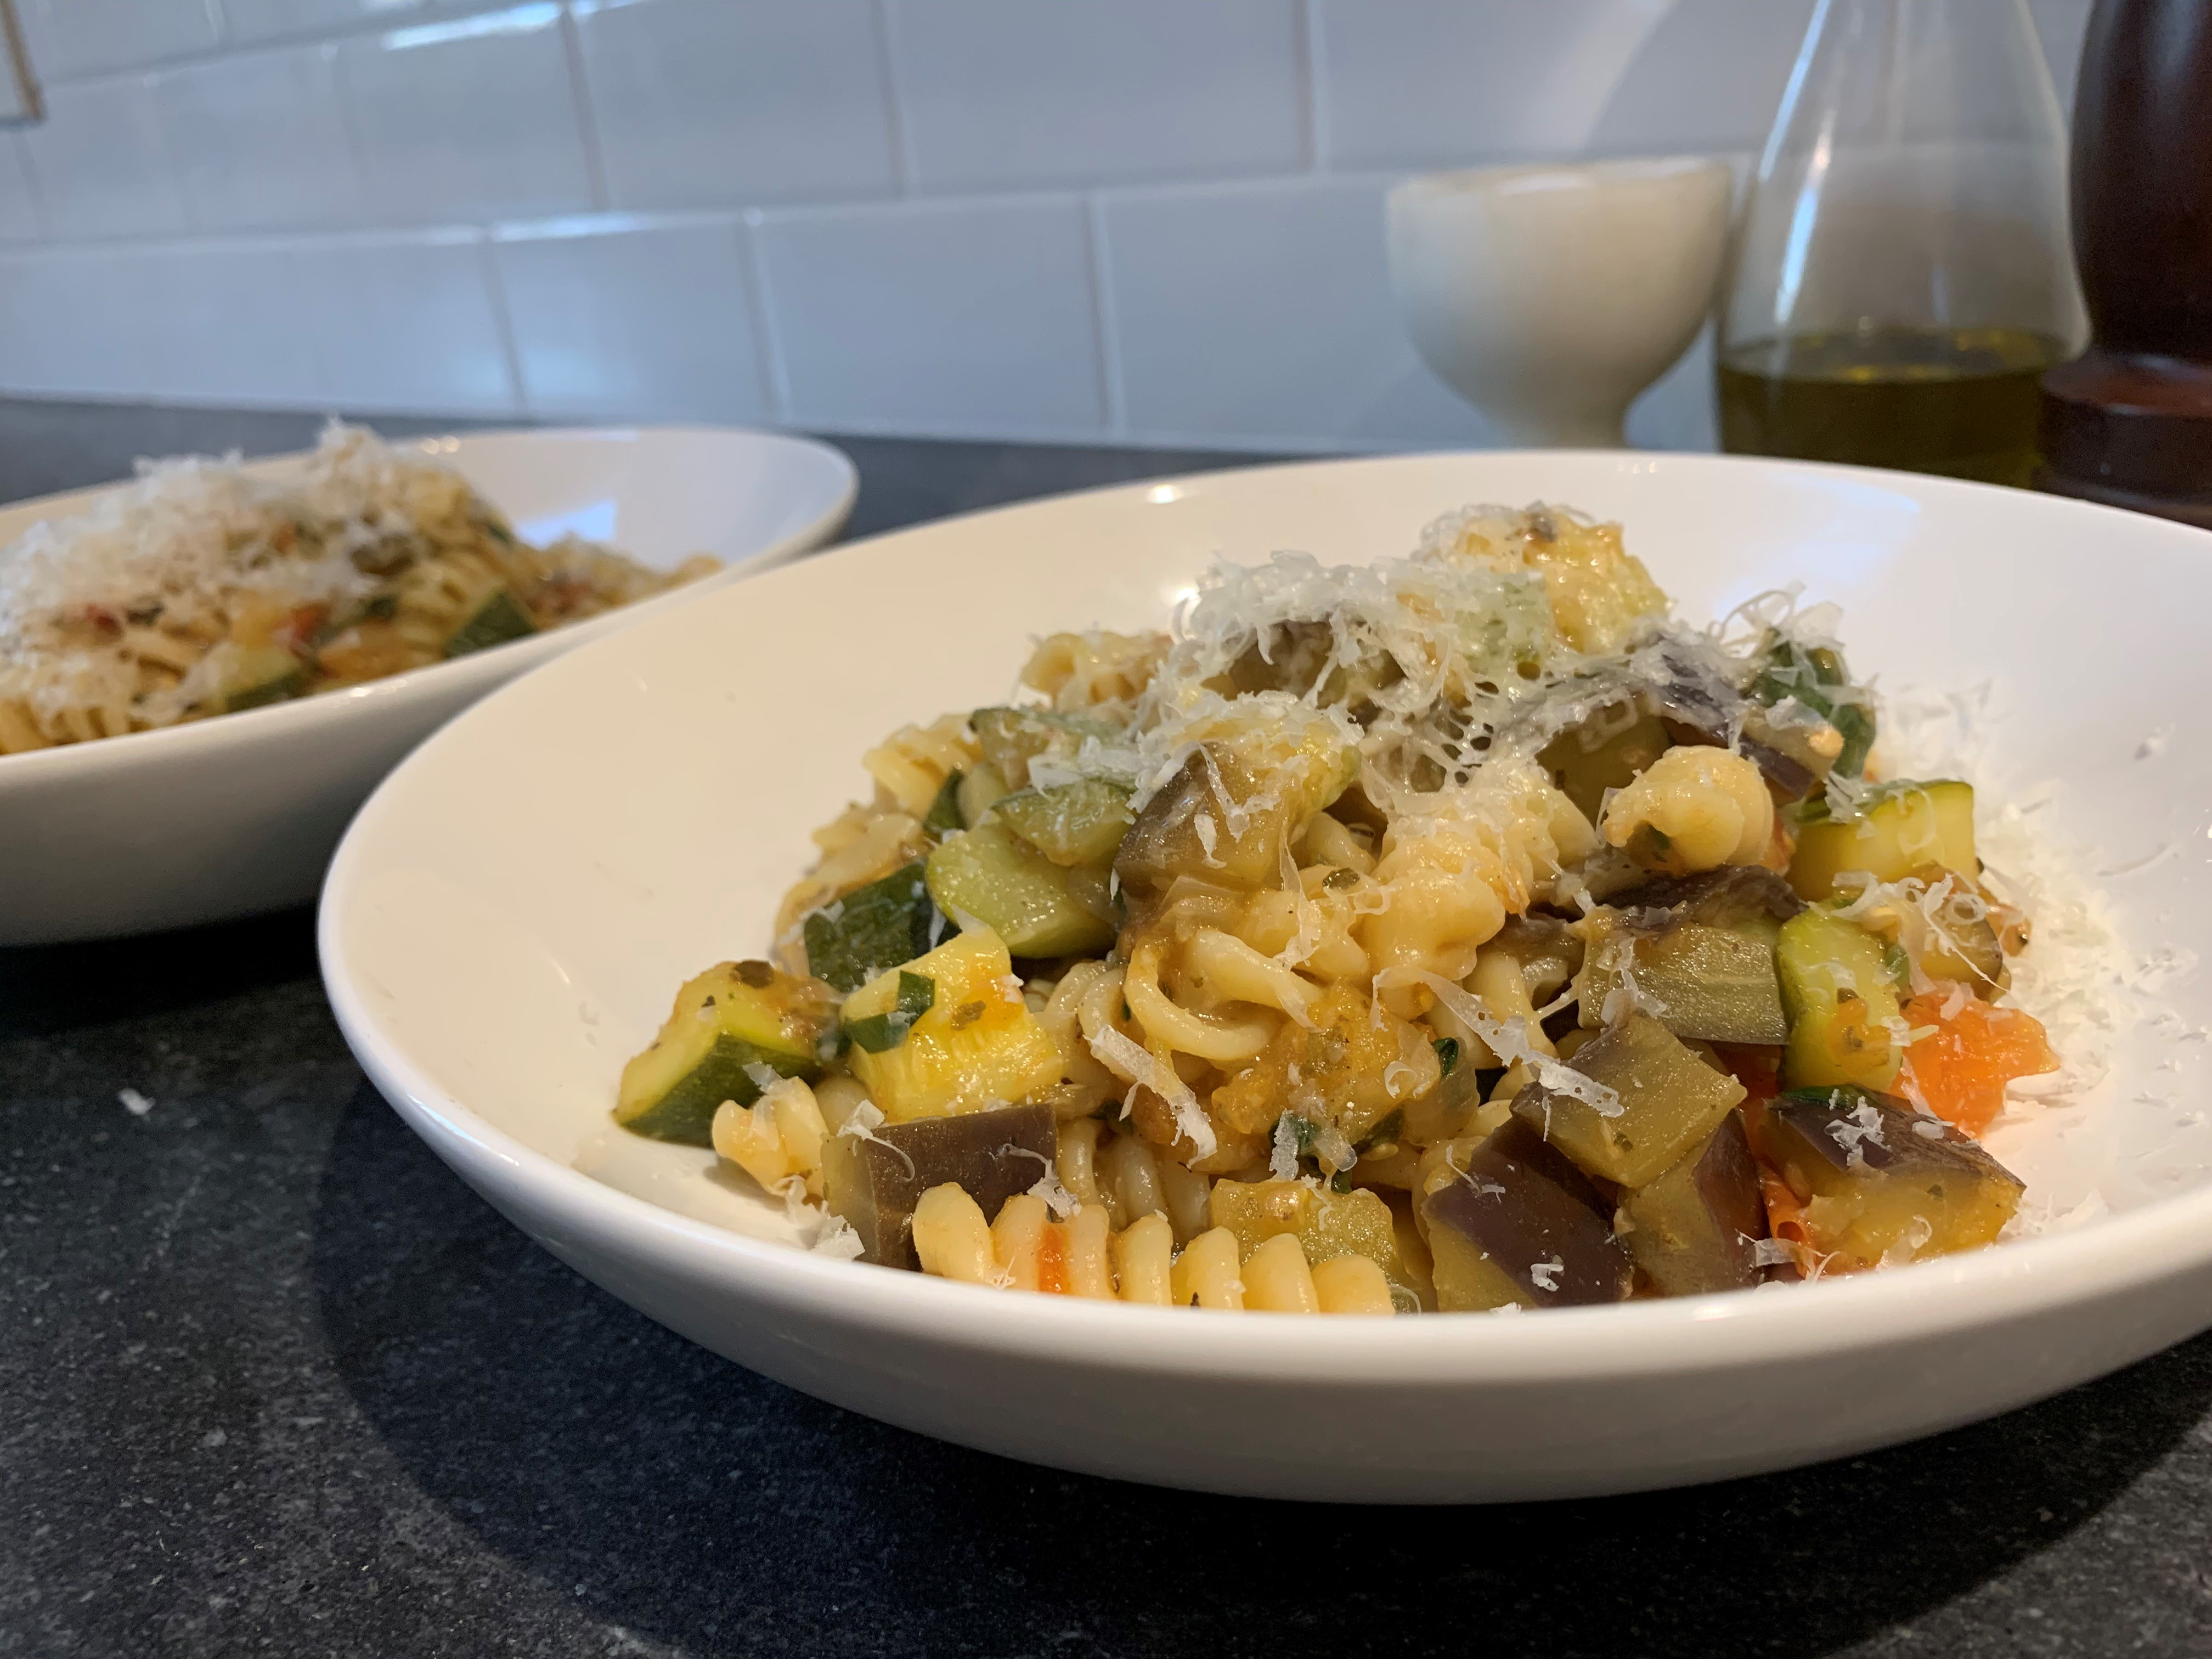 The finished product: delicious ratatouille pasta